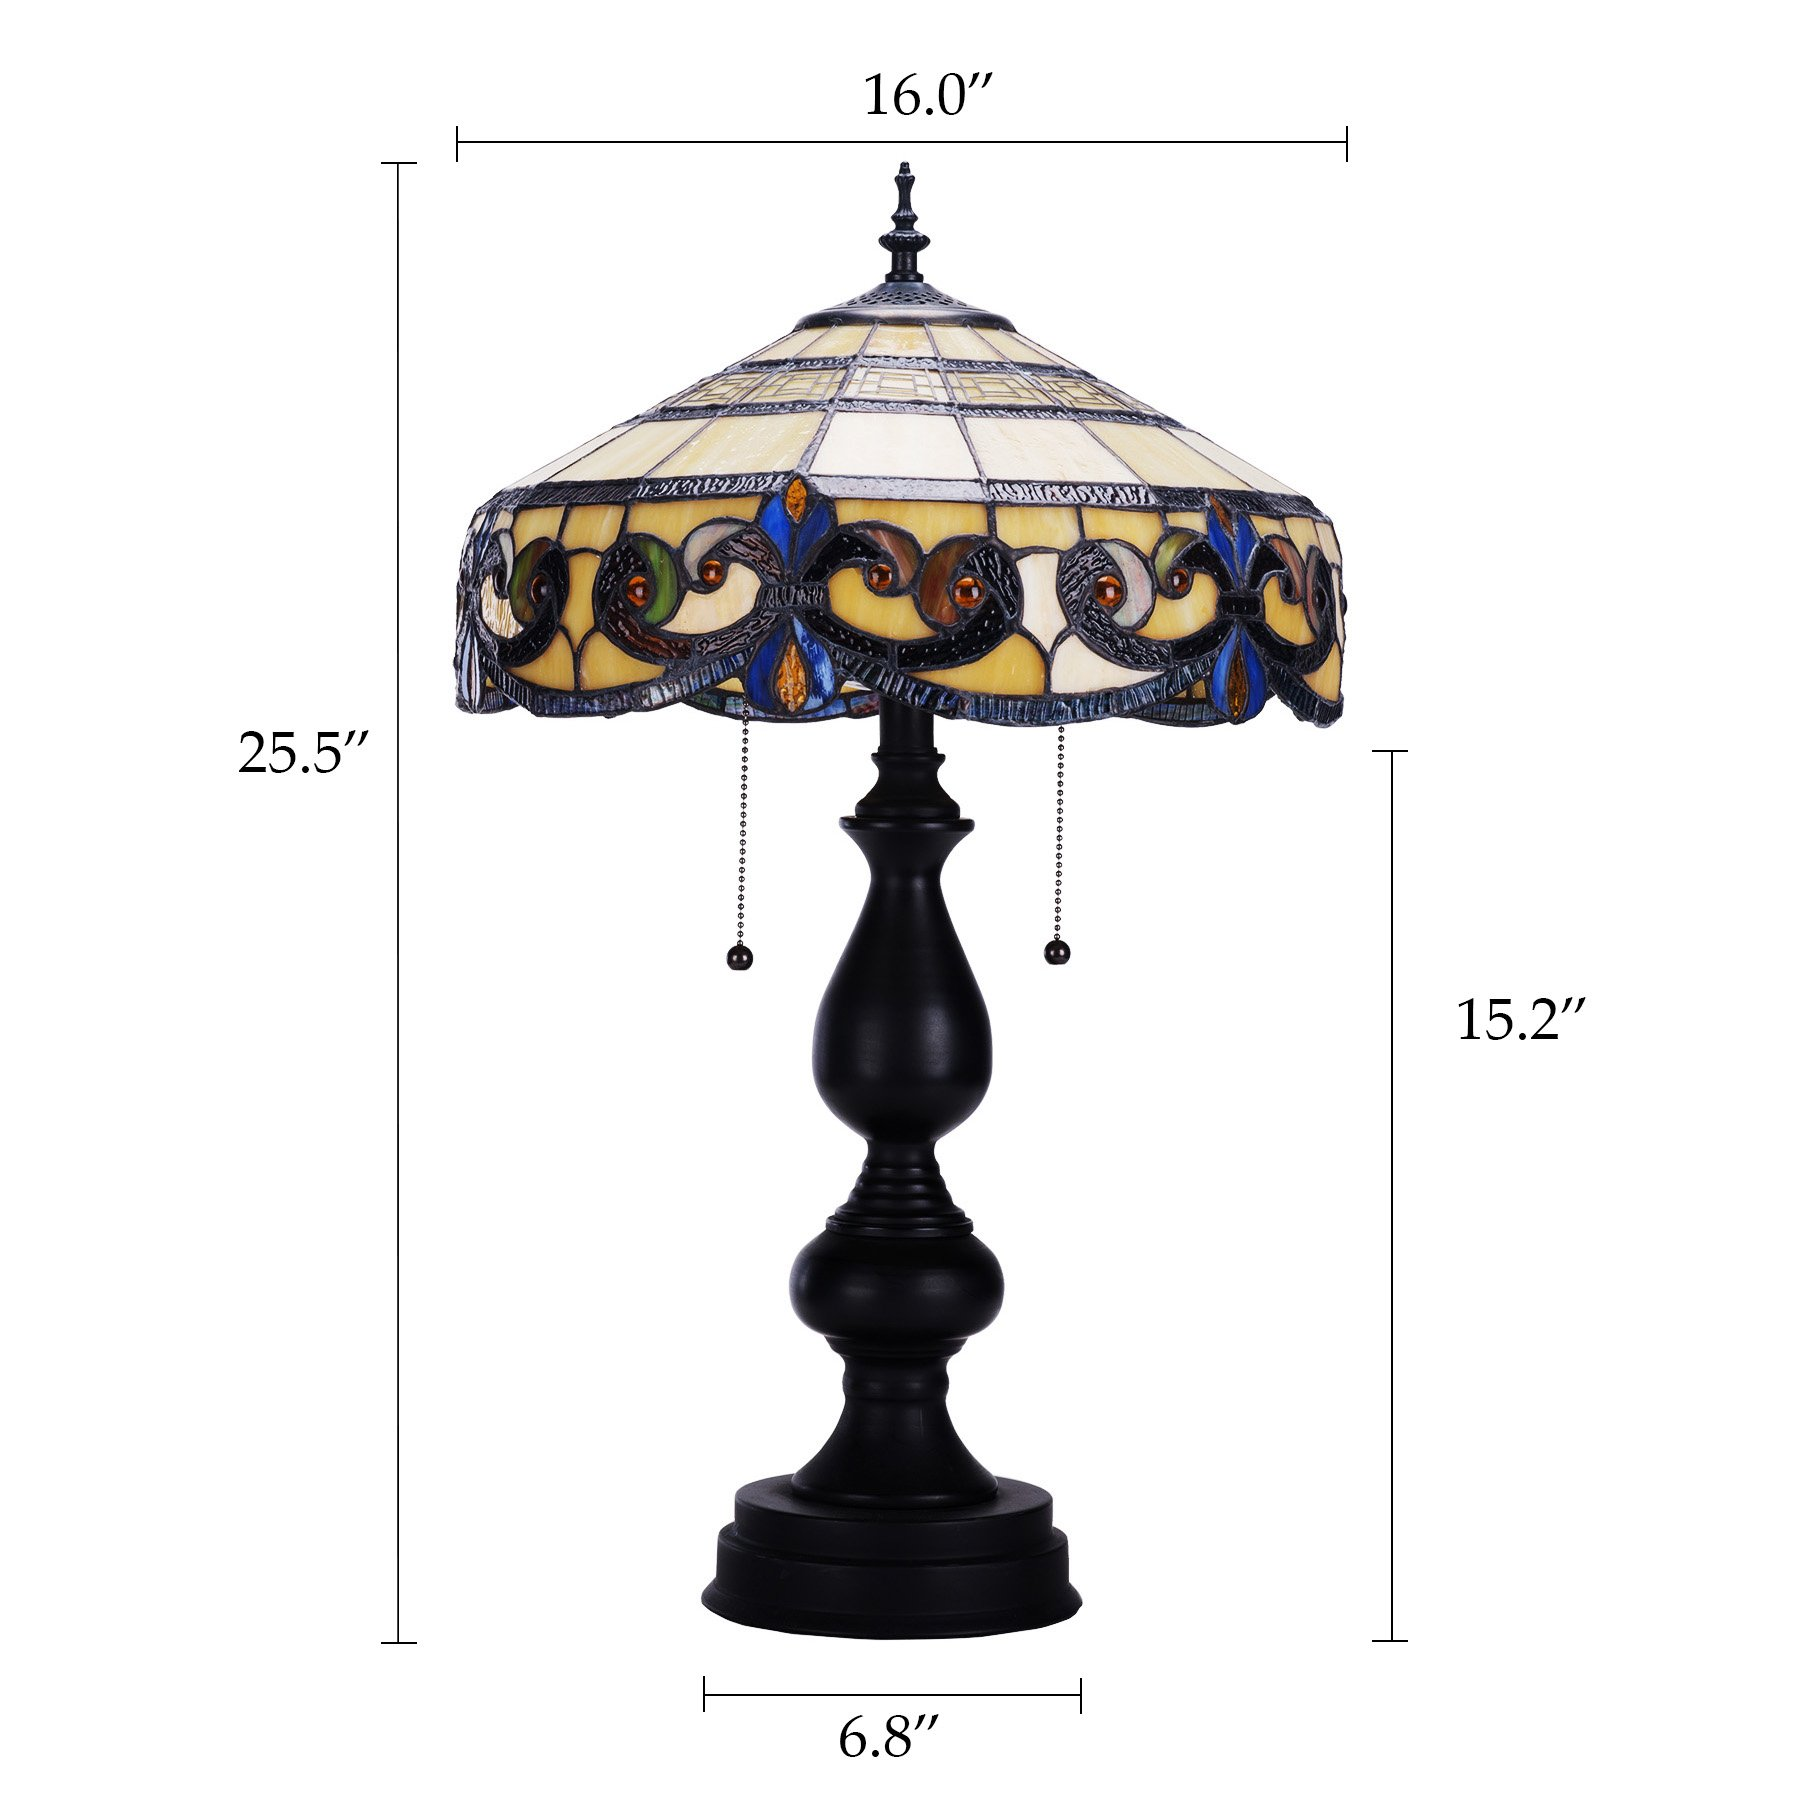 CO-Z Tiffany Style Table Lamps, 2-Light Victorian Desk Lamp with 16 Inches Stained Glass Shade, 25.5 Inches Height by CO-Z (Image #6)